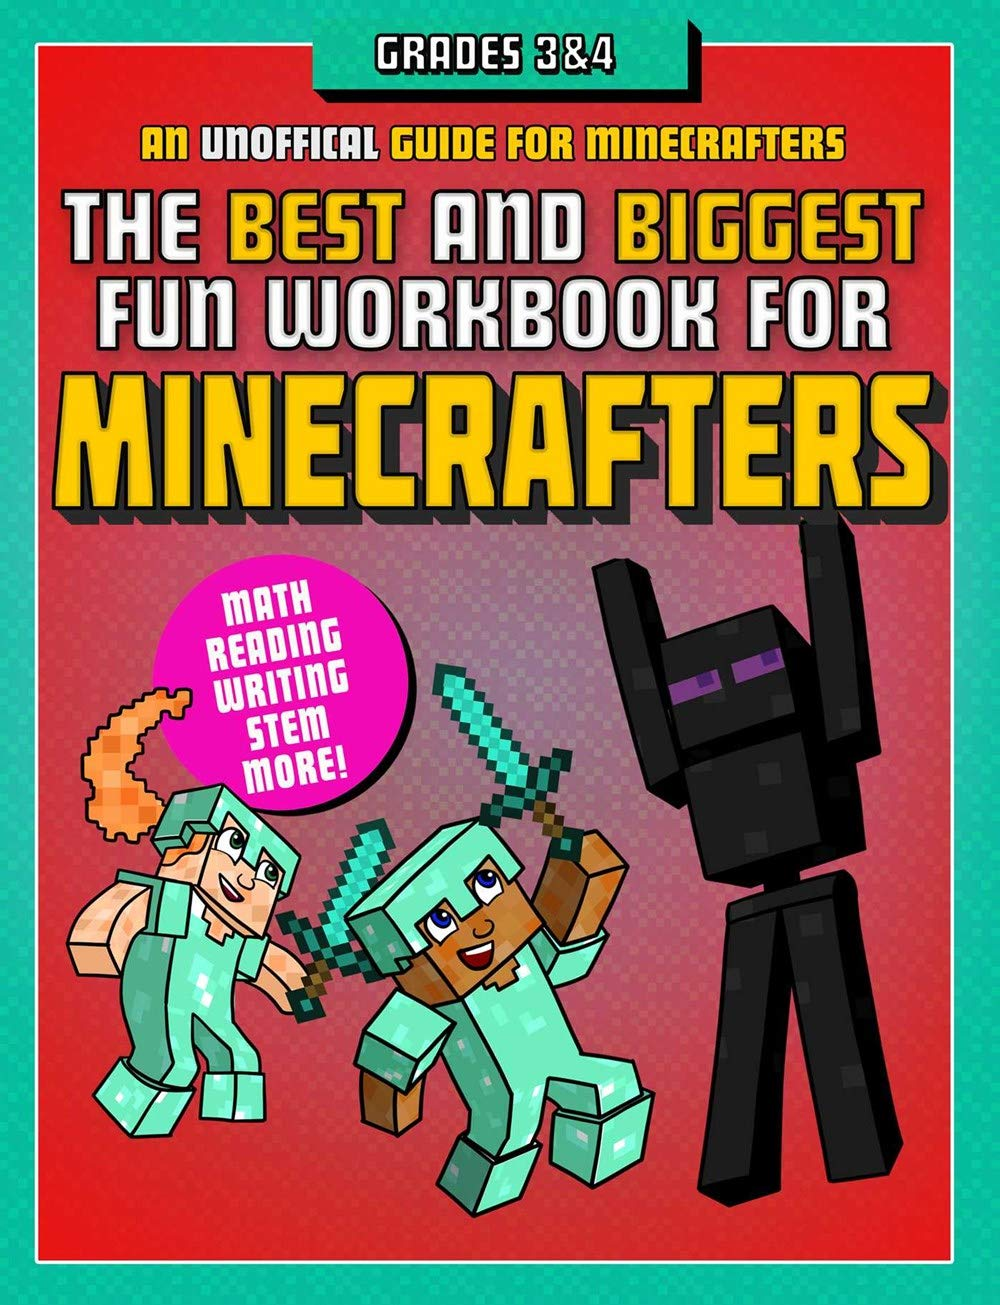 The Best And Biggest Fun Workbook For Minecrafters Grades 3 And 4  An Unofficial Learning Adventure For Minecrafters